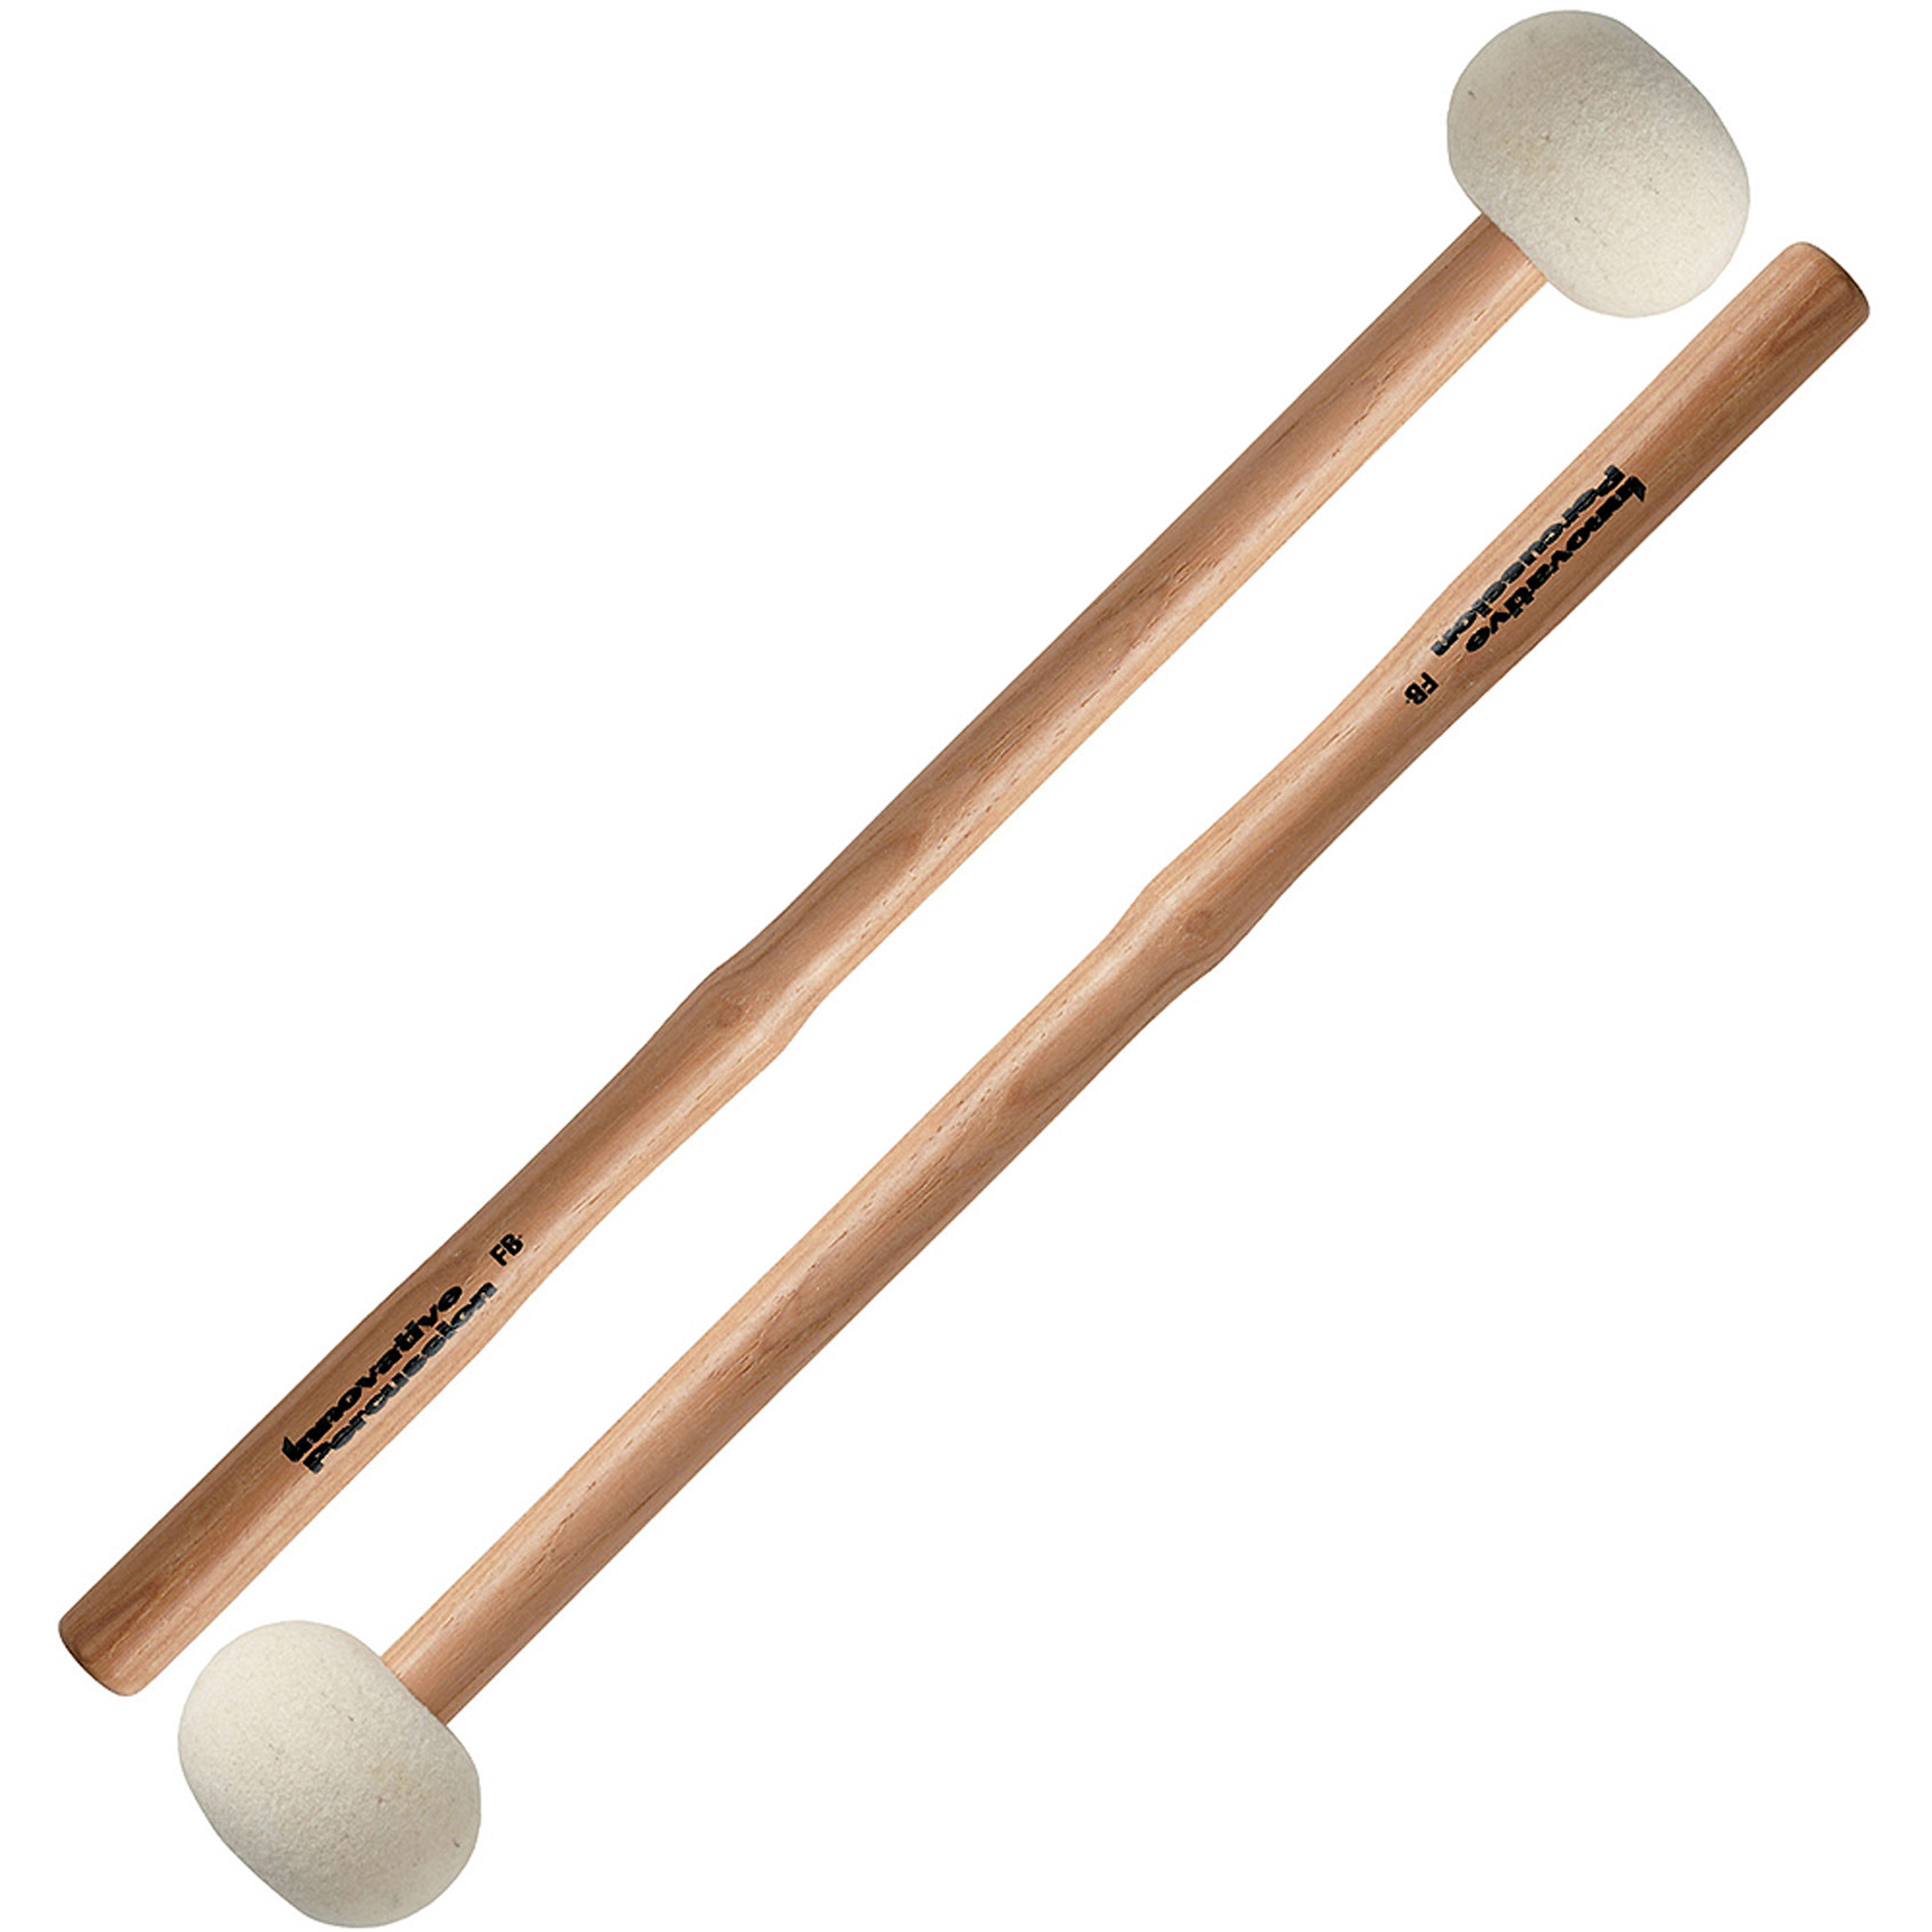 Innovative Percussion FB4 Hard Marching Bass Drum Mallets w/ Heartwood Hickory Shafts